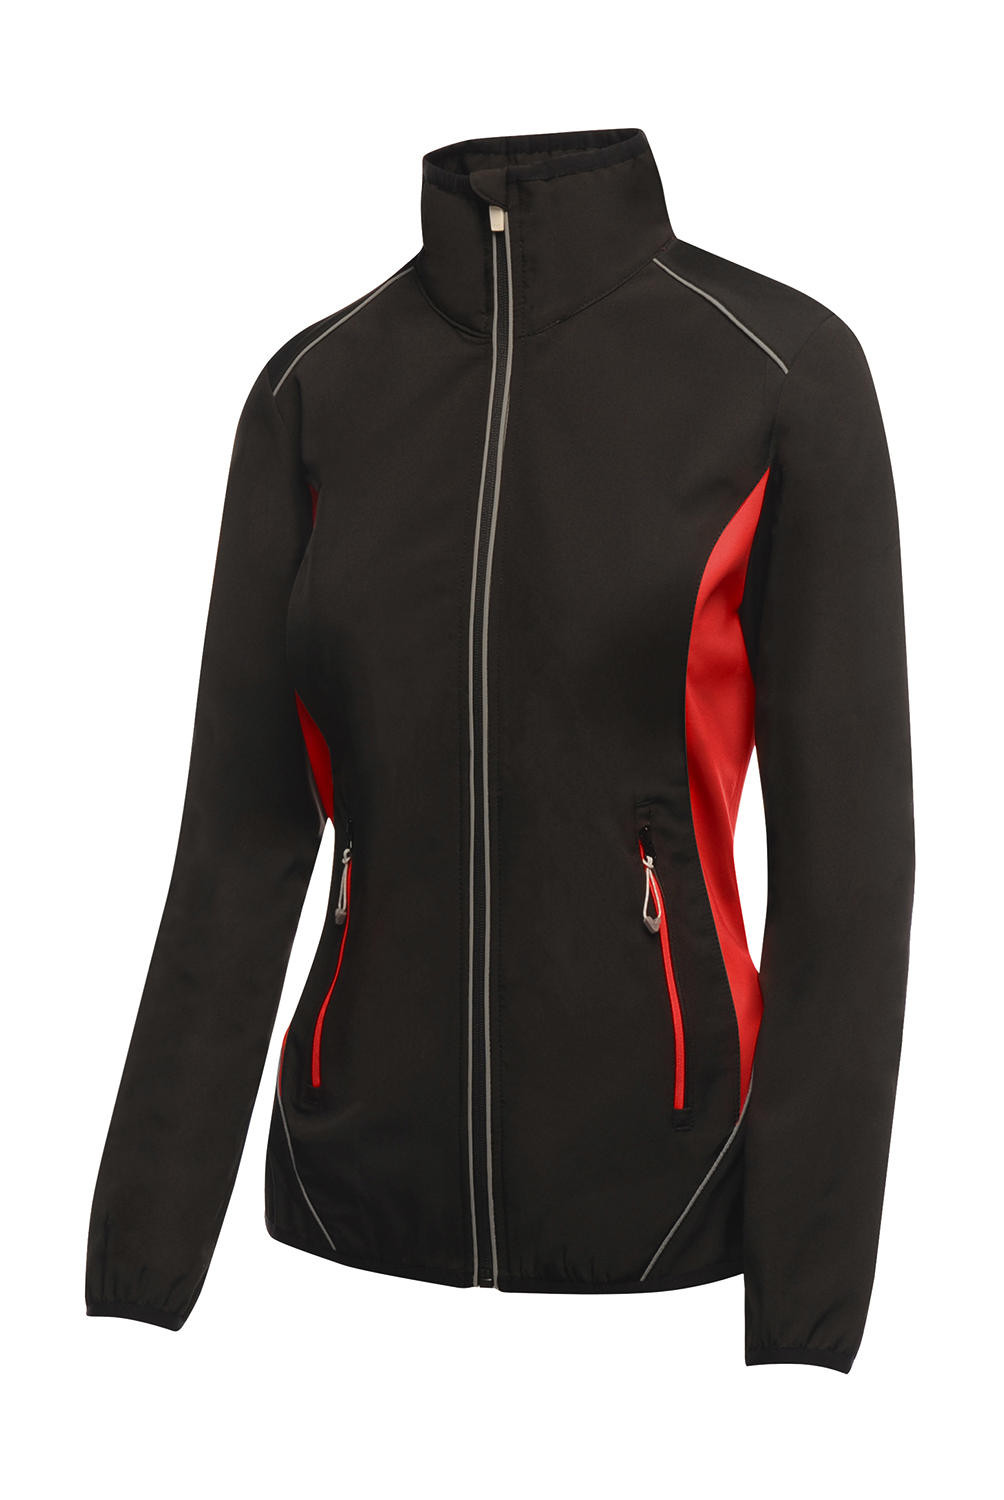 Regatta Activewear Ladies Sochi Softshell